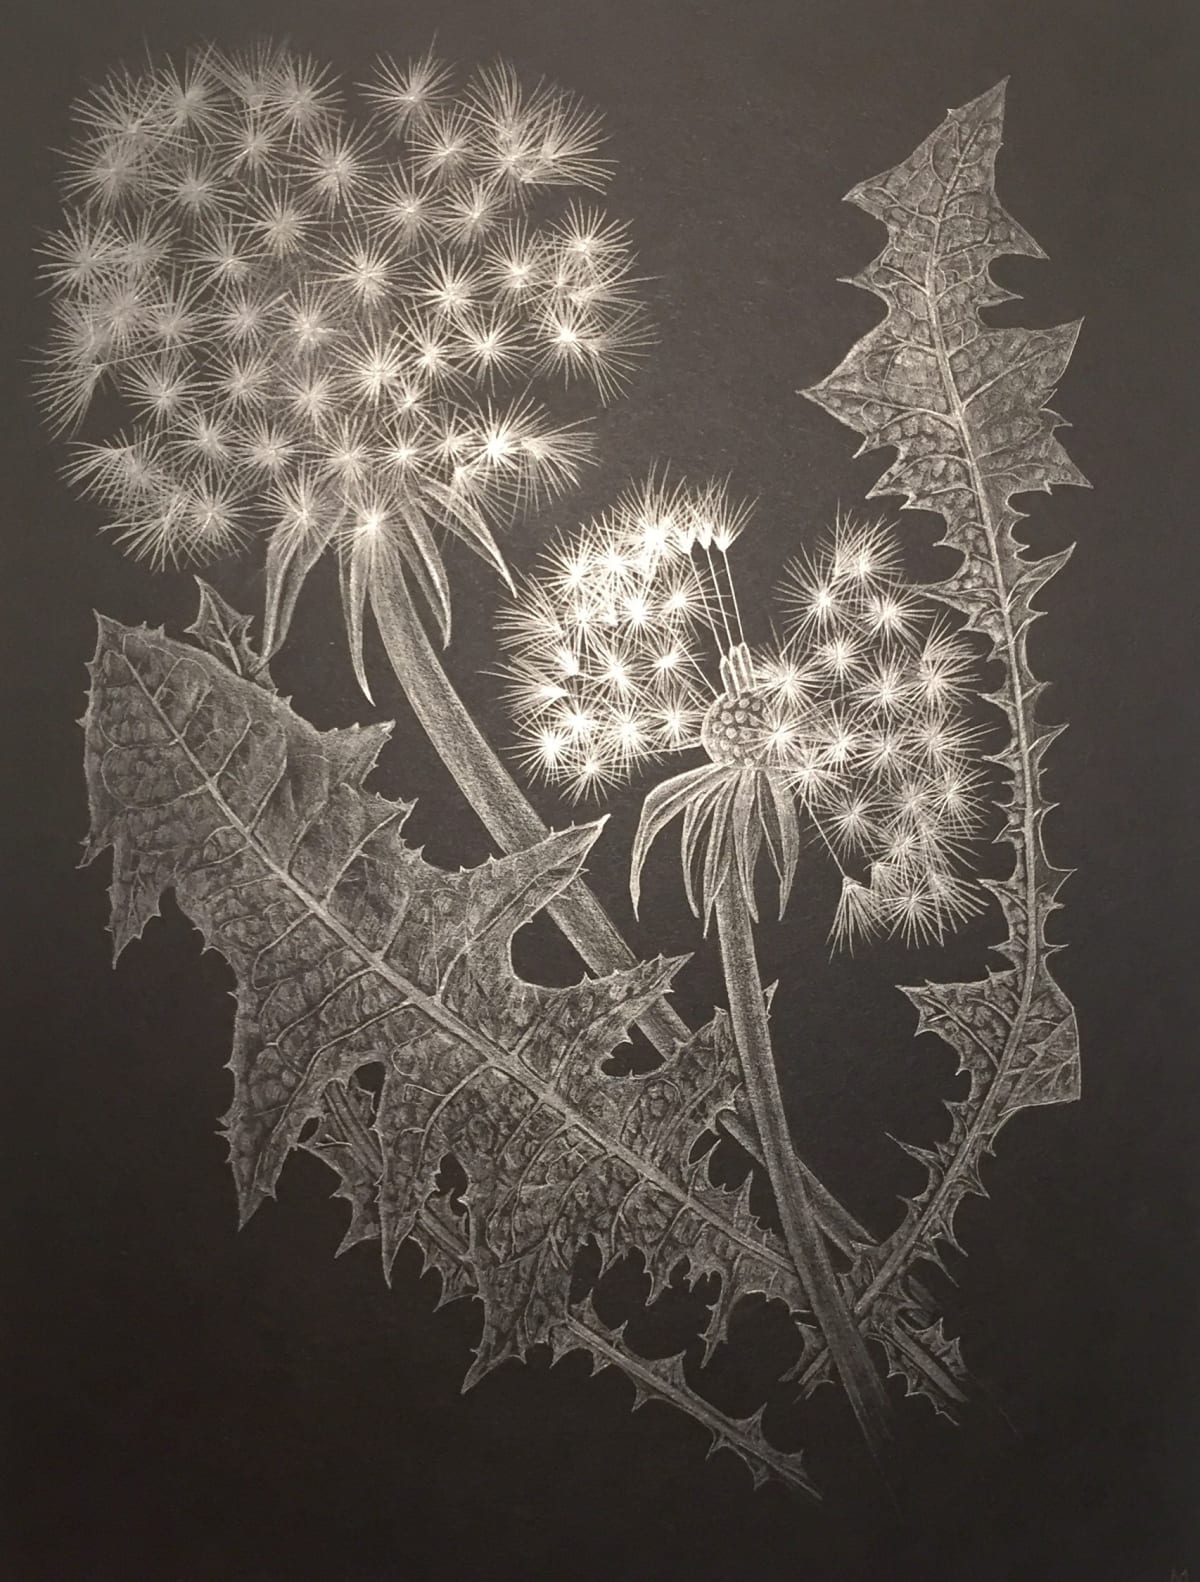 Margot Glass, Two Dandelions, 2018